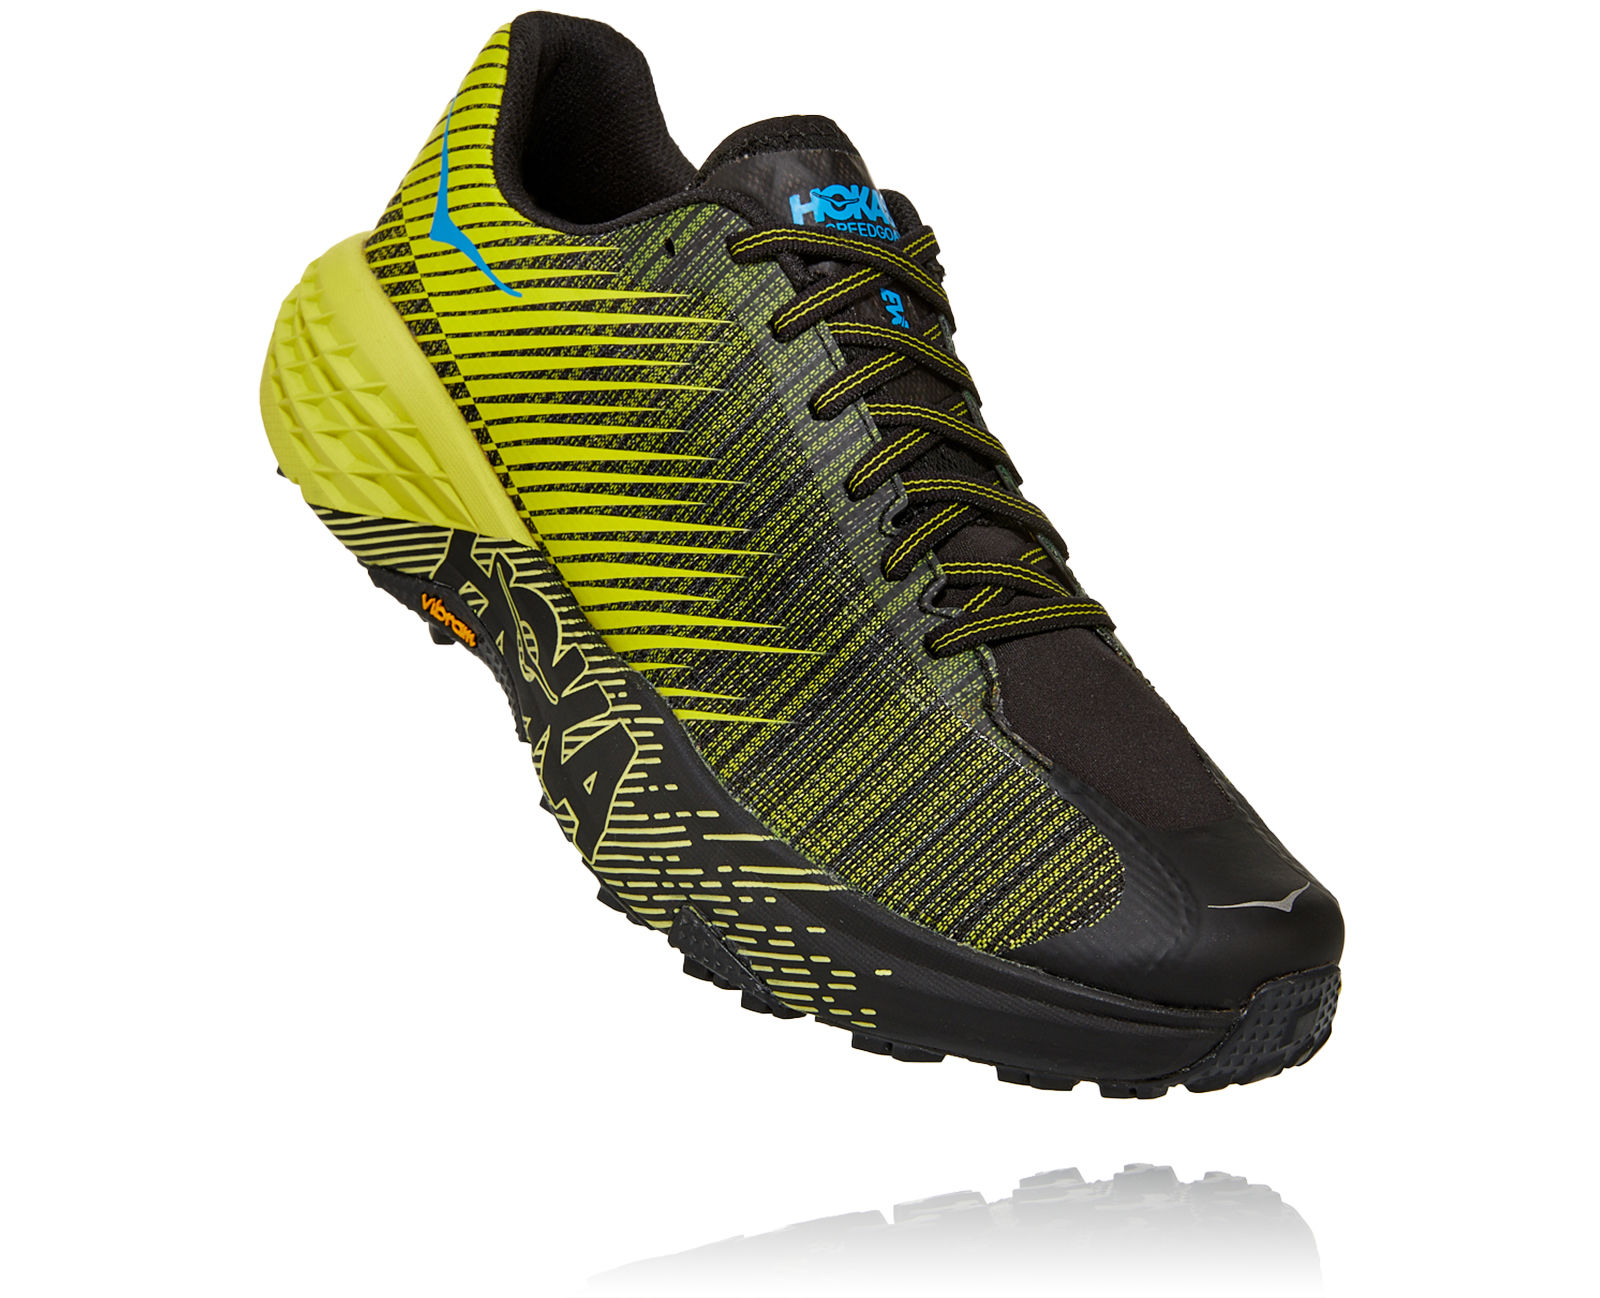 Hoka One One Evo Speedgoat in Gelb Grau